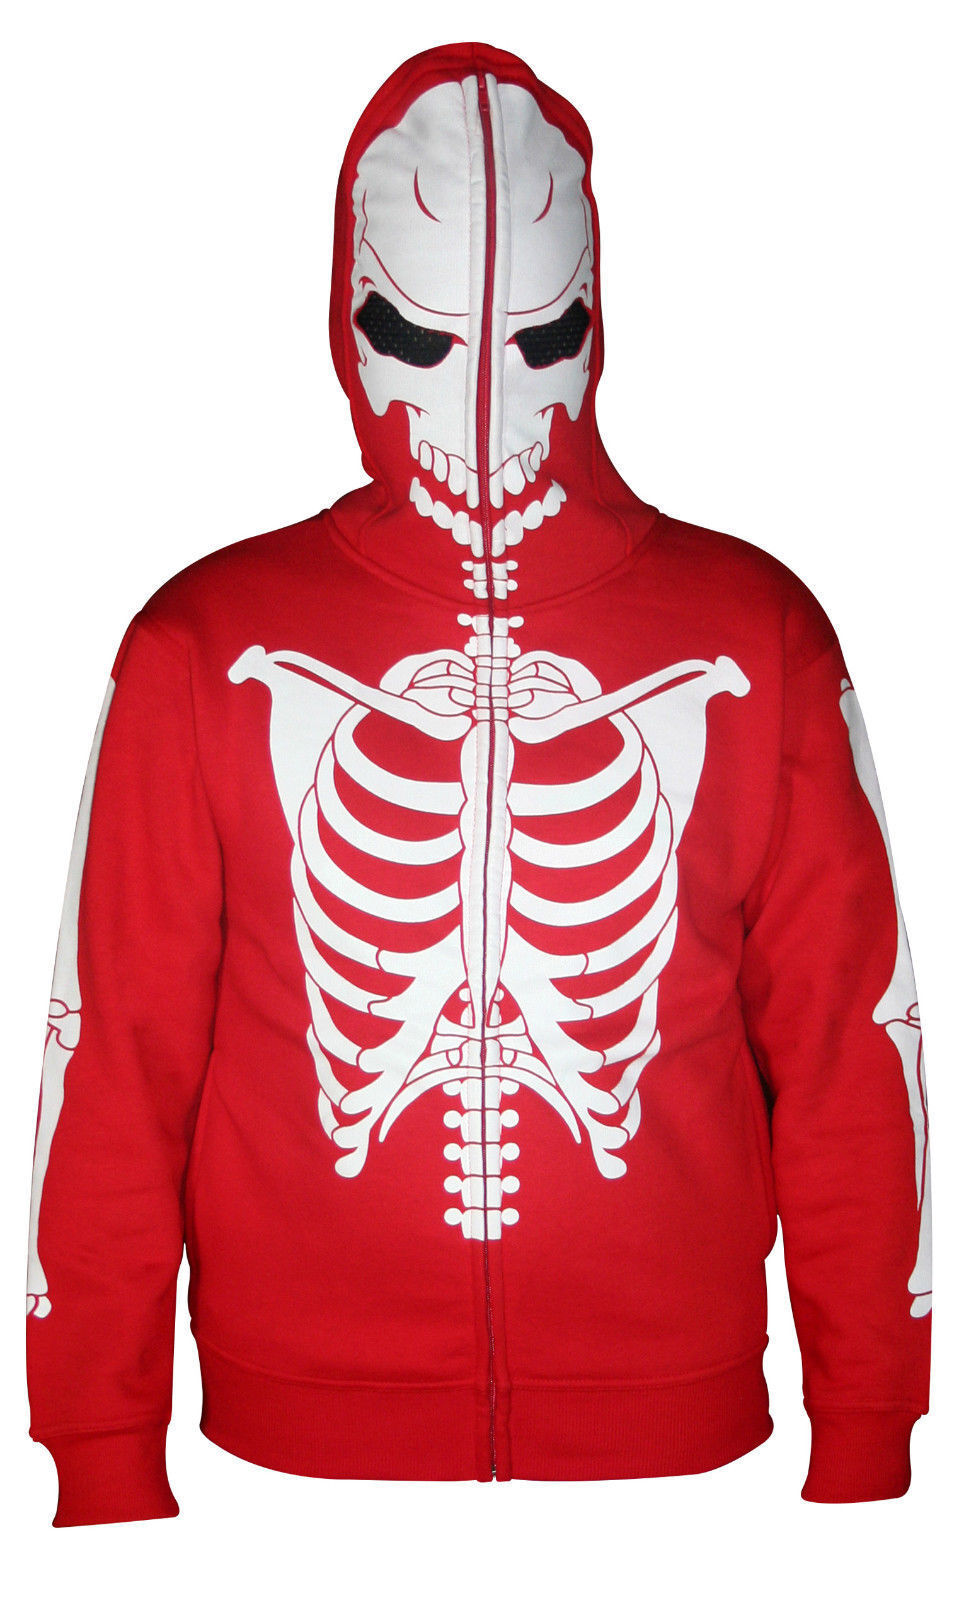 Mens Full Face Mask Skeleton Skull Hoodie Sweatshirt